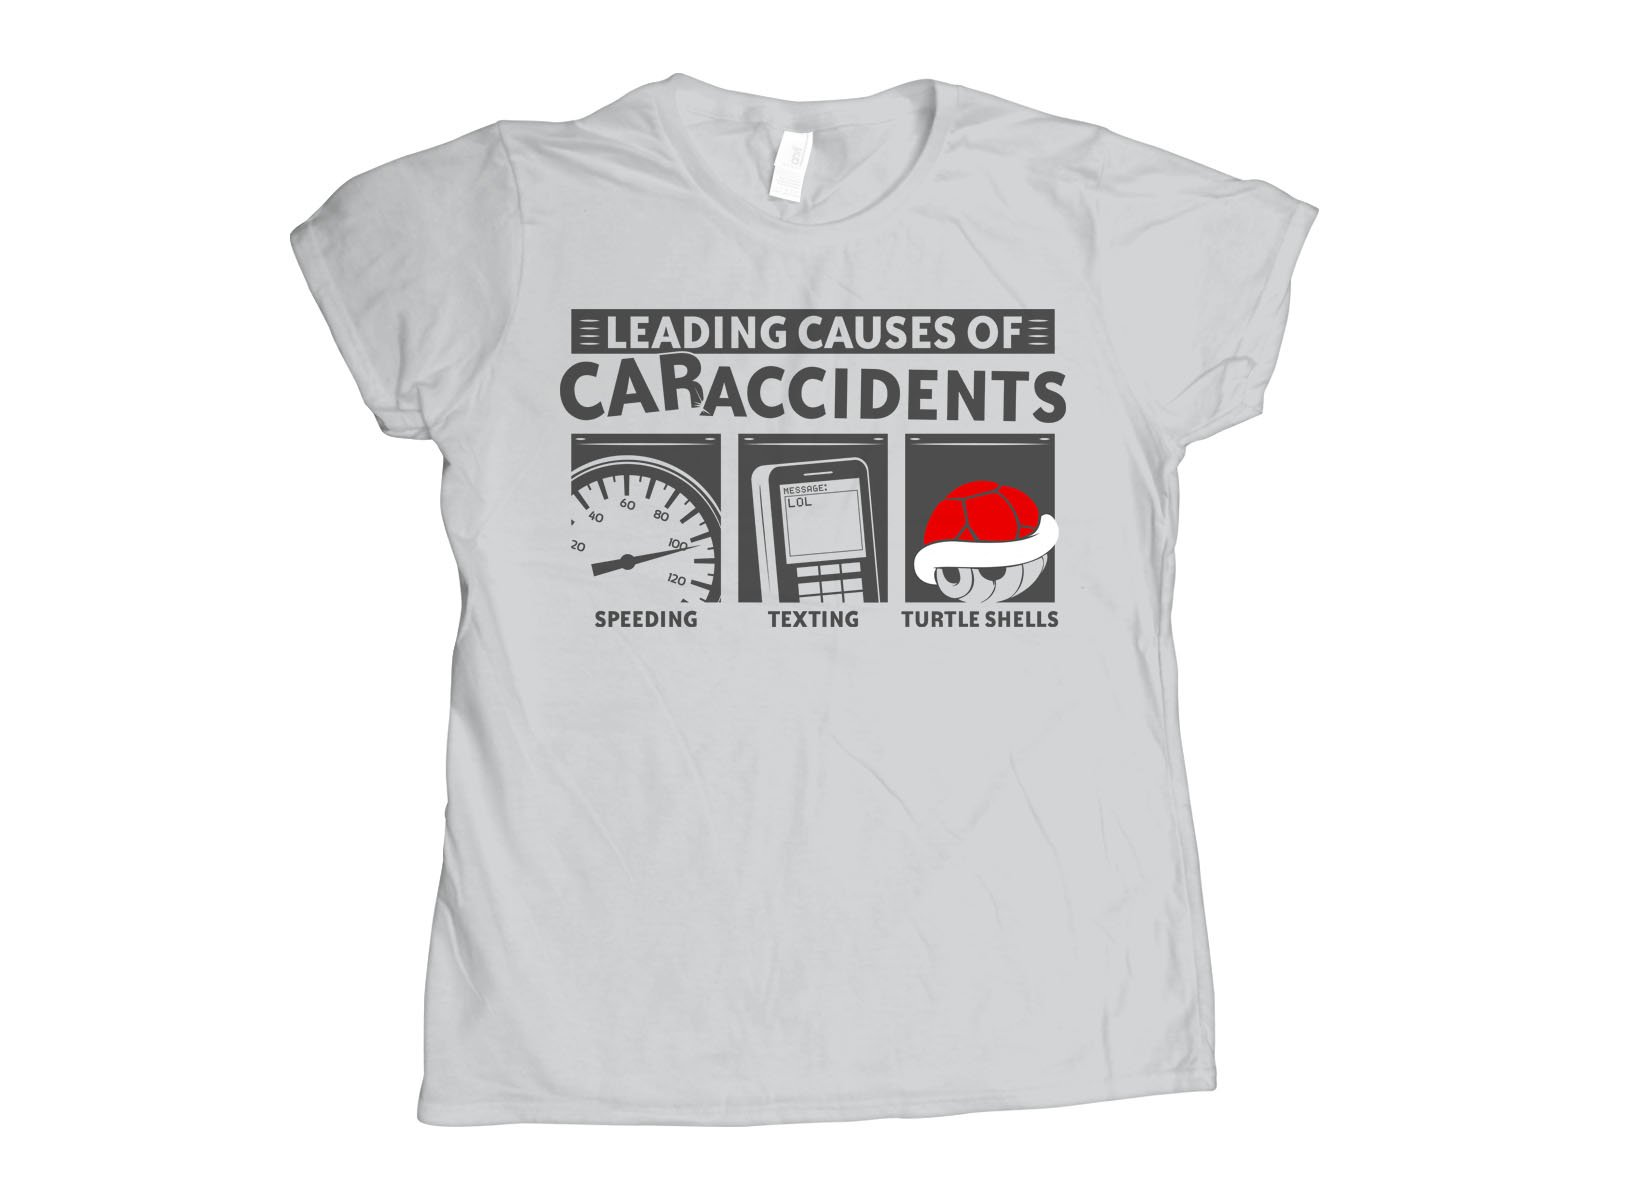 Leading Causes of Accidents on Womens T-Shirt